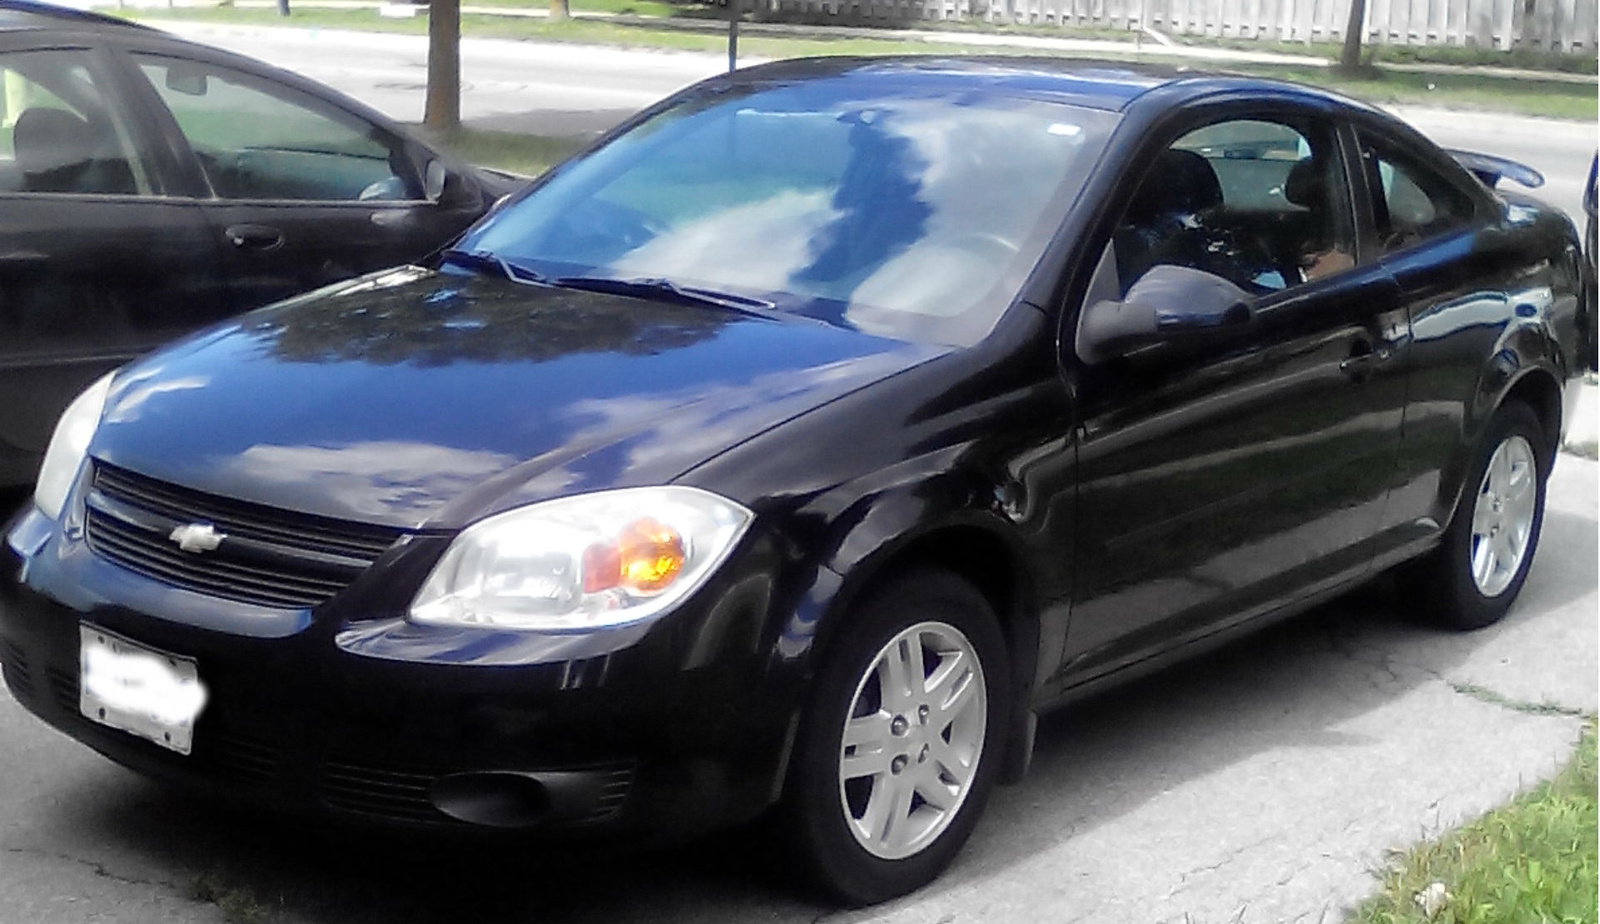 All Chevy 2005 chevy colbalt : Chevrolet Cobalt Questions - I am not a dealer, but want to sell ...